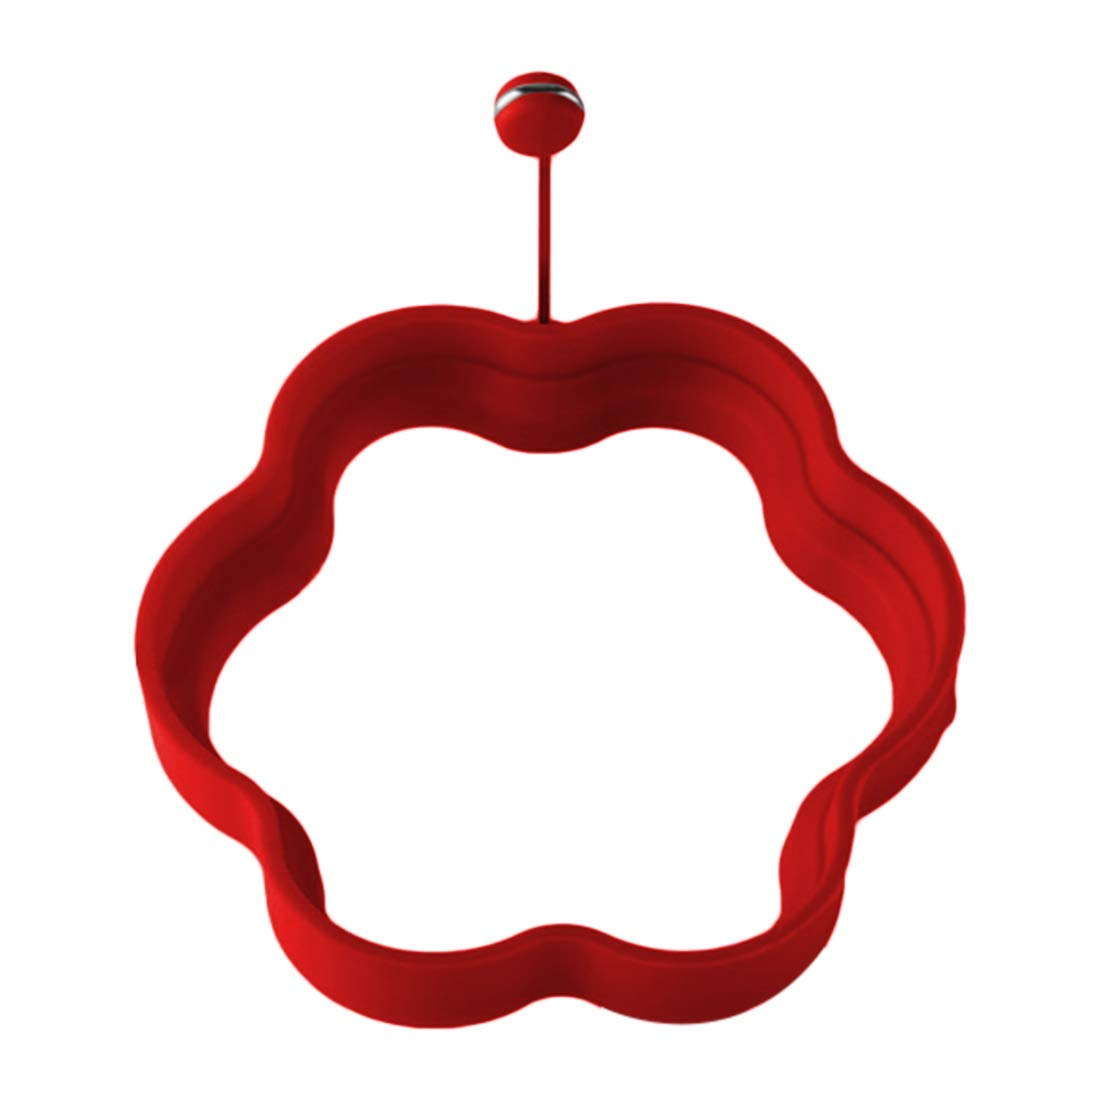 dufu-beauty-store Silicone Egg Ring Breakfast Pancake Cooking Tools Frying Egg Moulds Fried Egg Molds Kitchen Gadgets